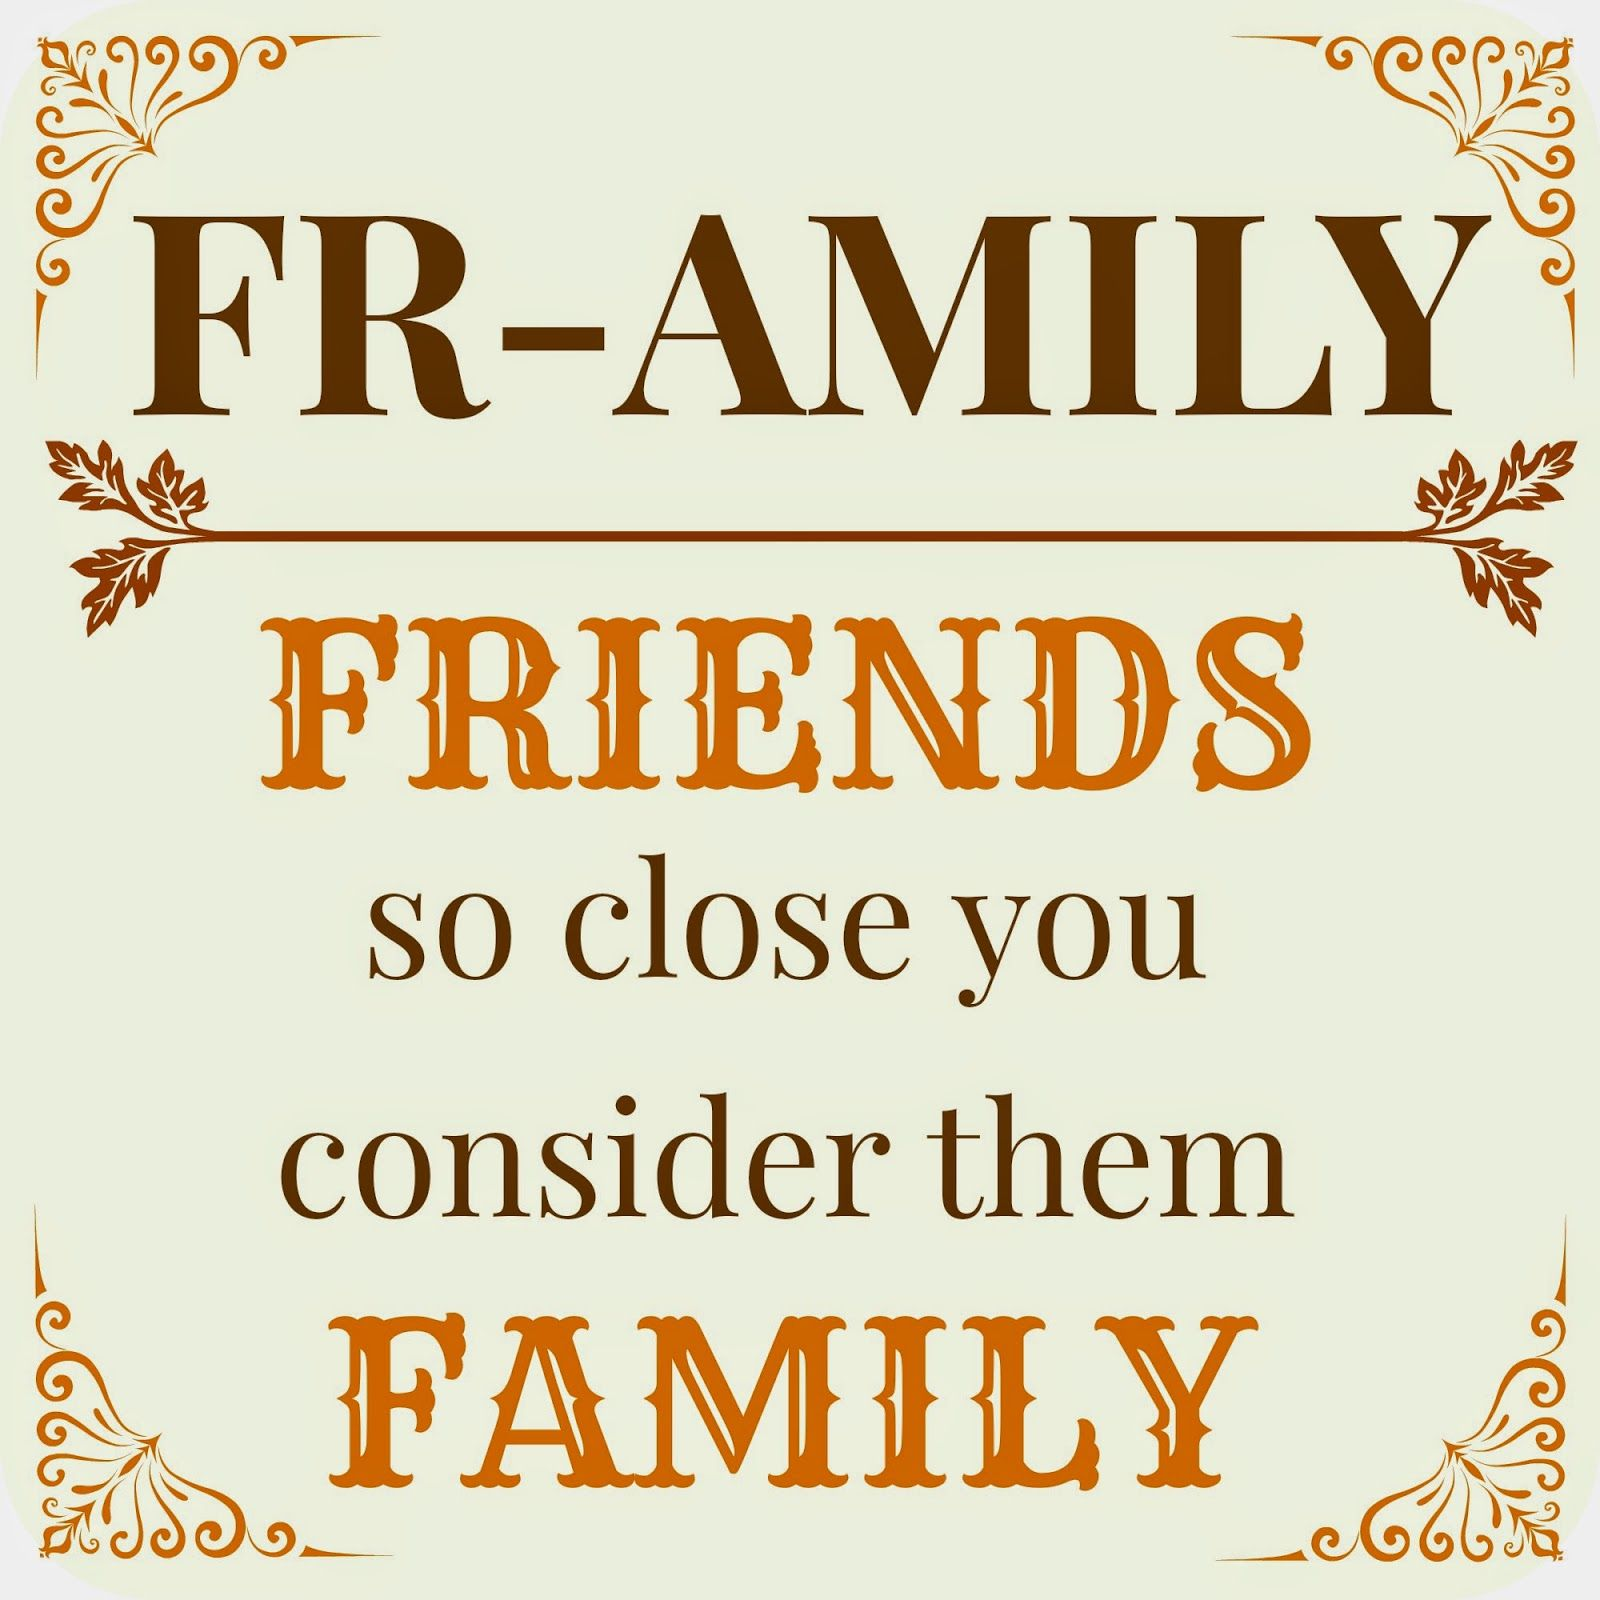 If you have a family that loves you, a few good friends